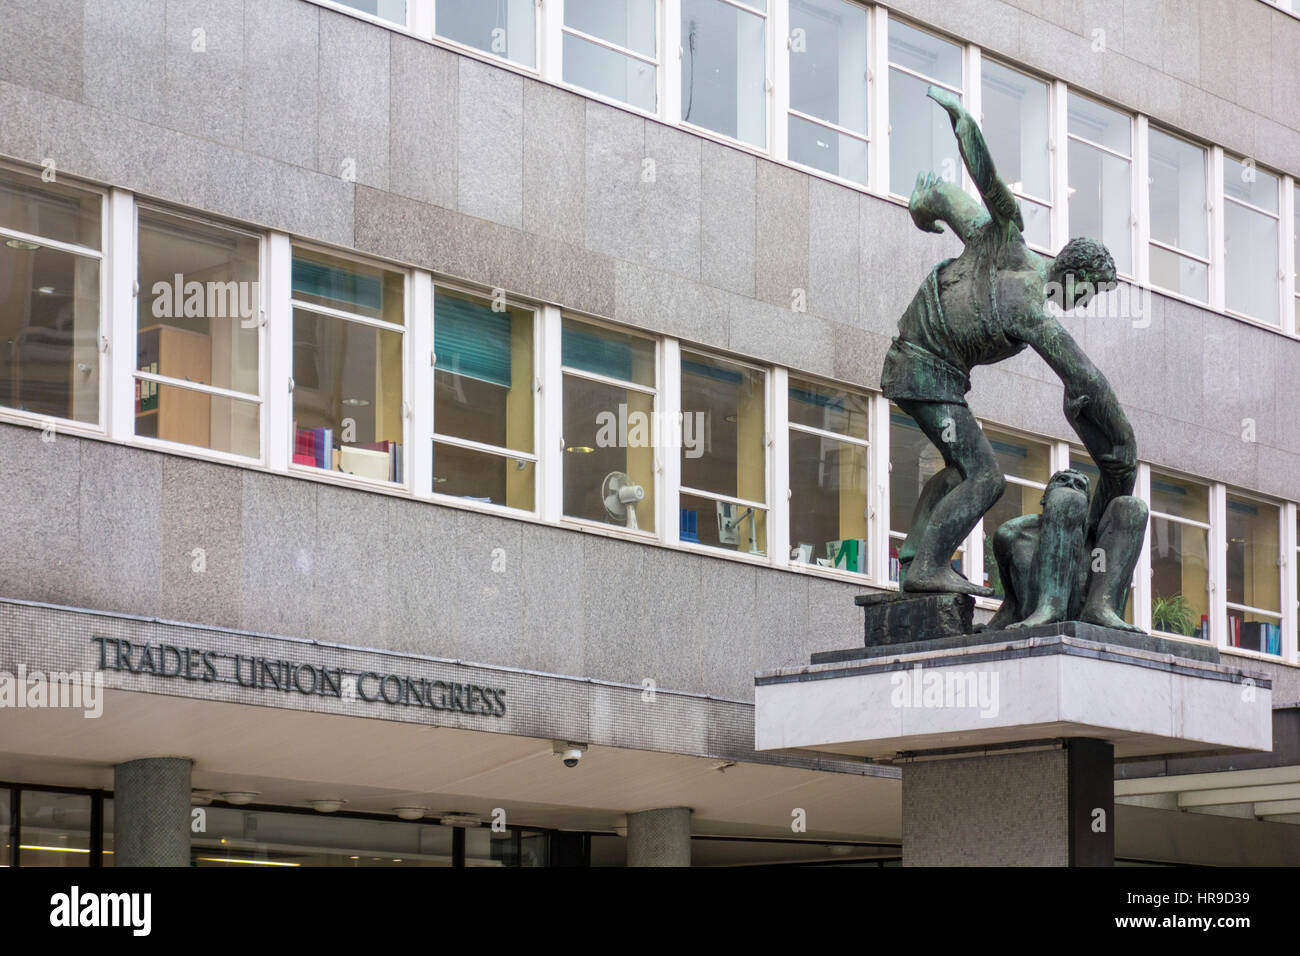 TUC, Trades Union Congress building, London, UK - Stock Image